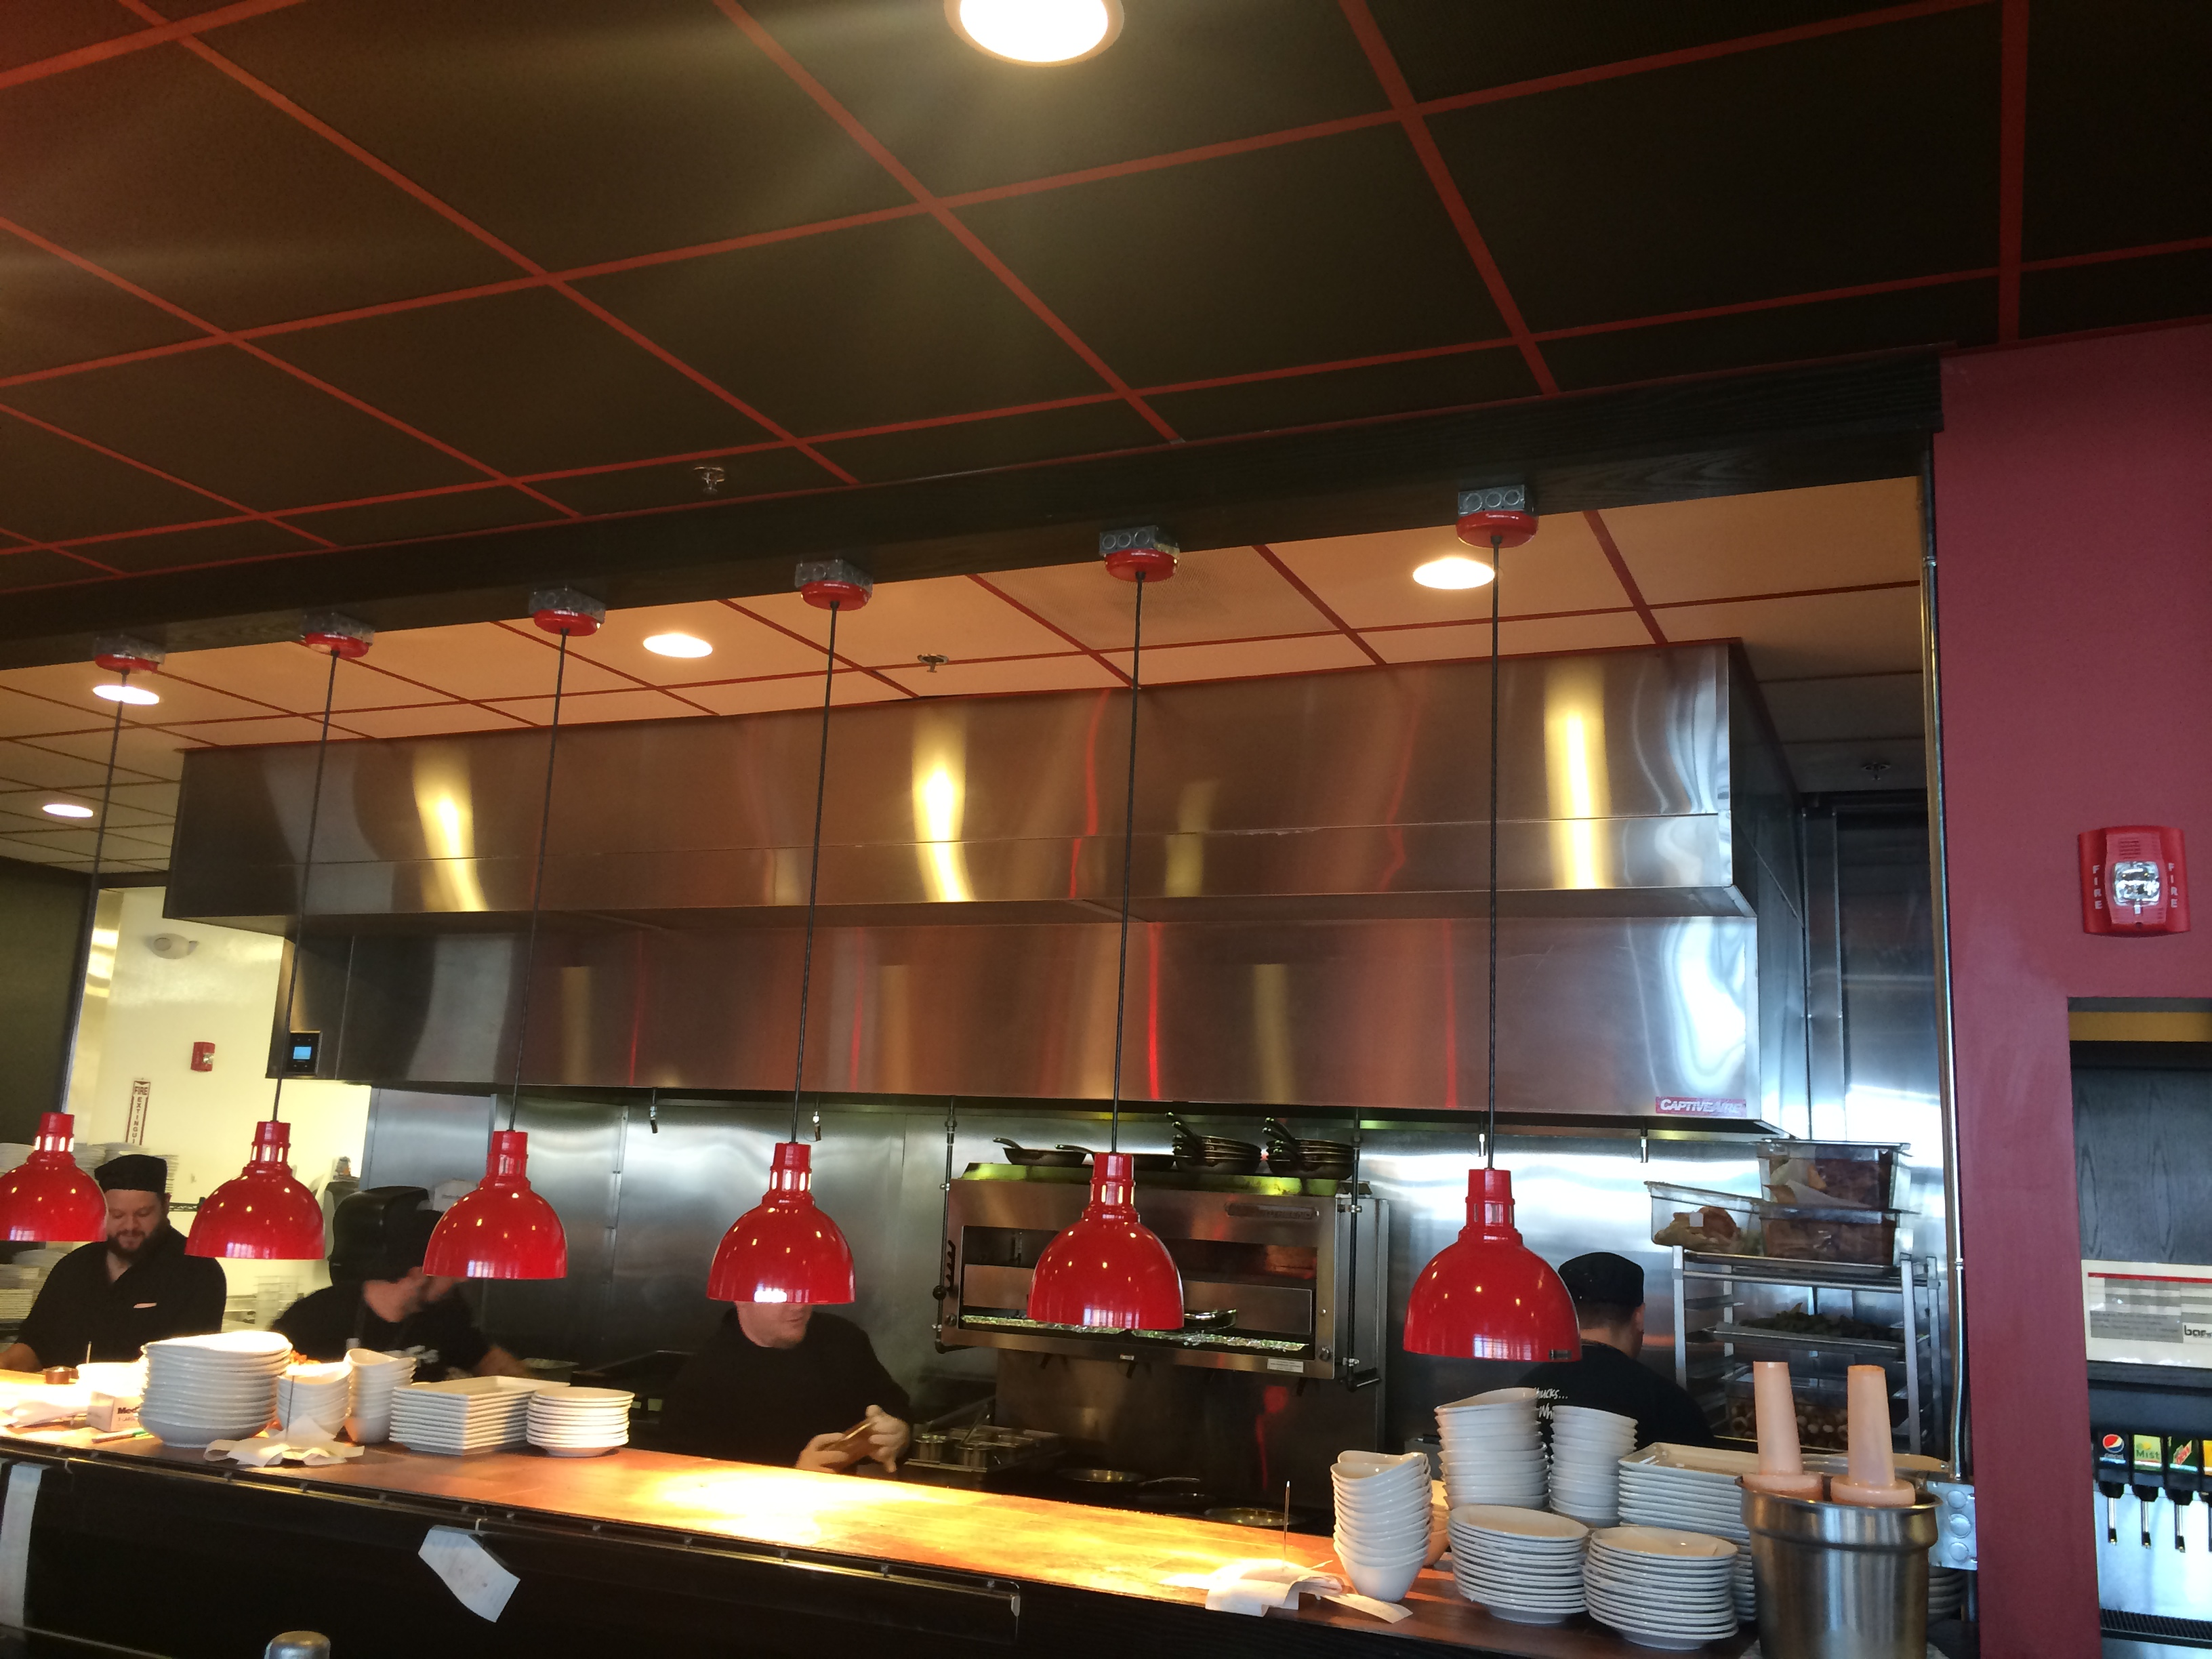 Commercial kitchens add complexity ashland comfort control - Commercial kitchen vent hood designs ...